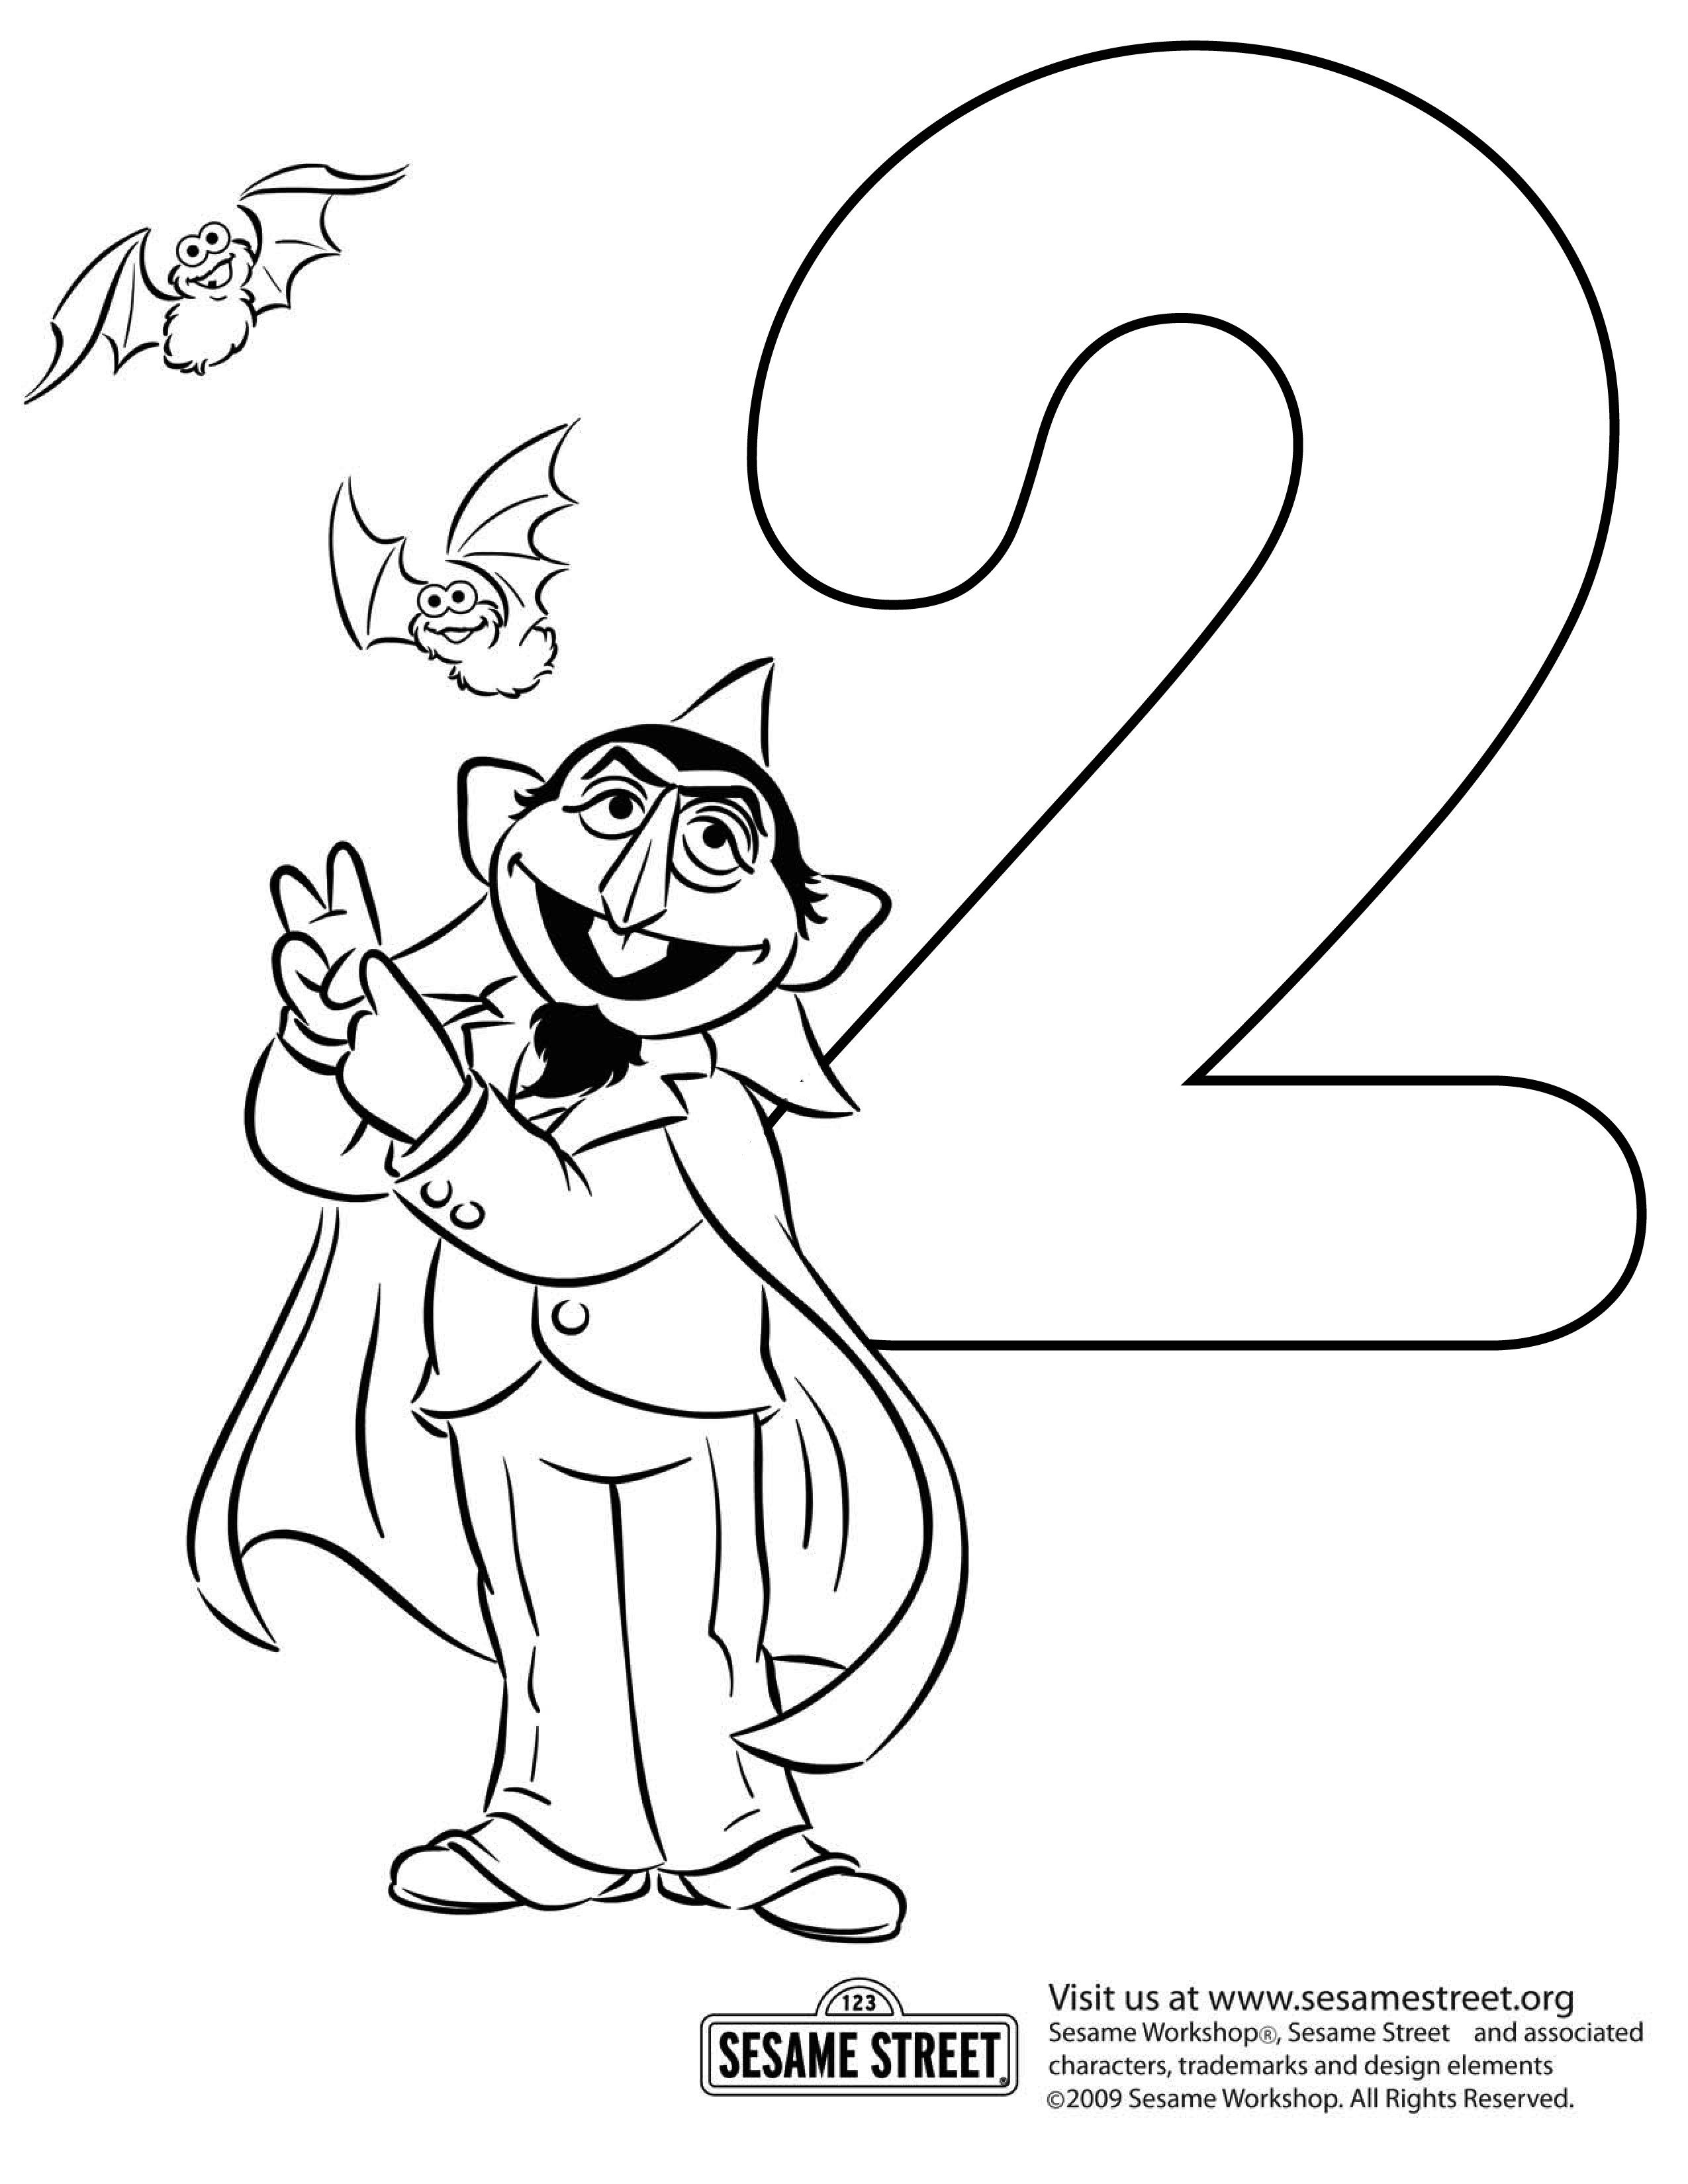 Art: Sesame Street | PBS Kids #MPBAmGrad Find coloring pages for ... | 3300x2550